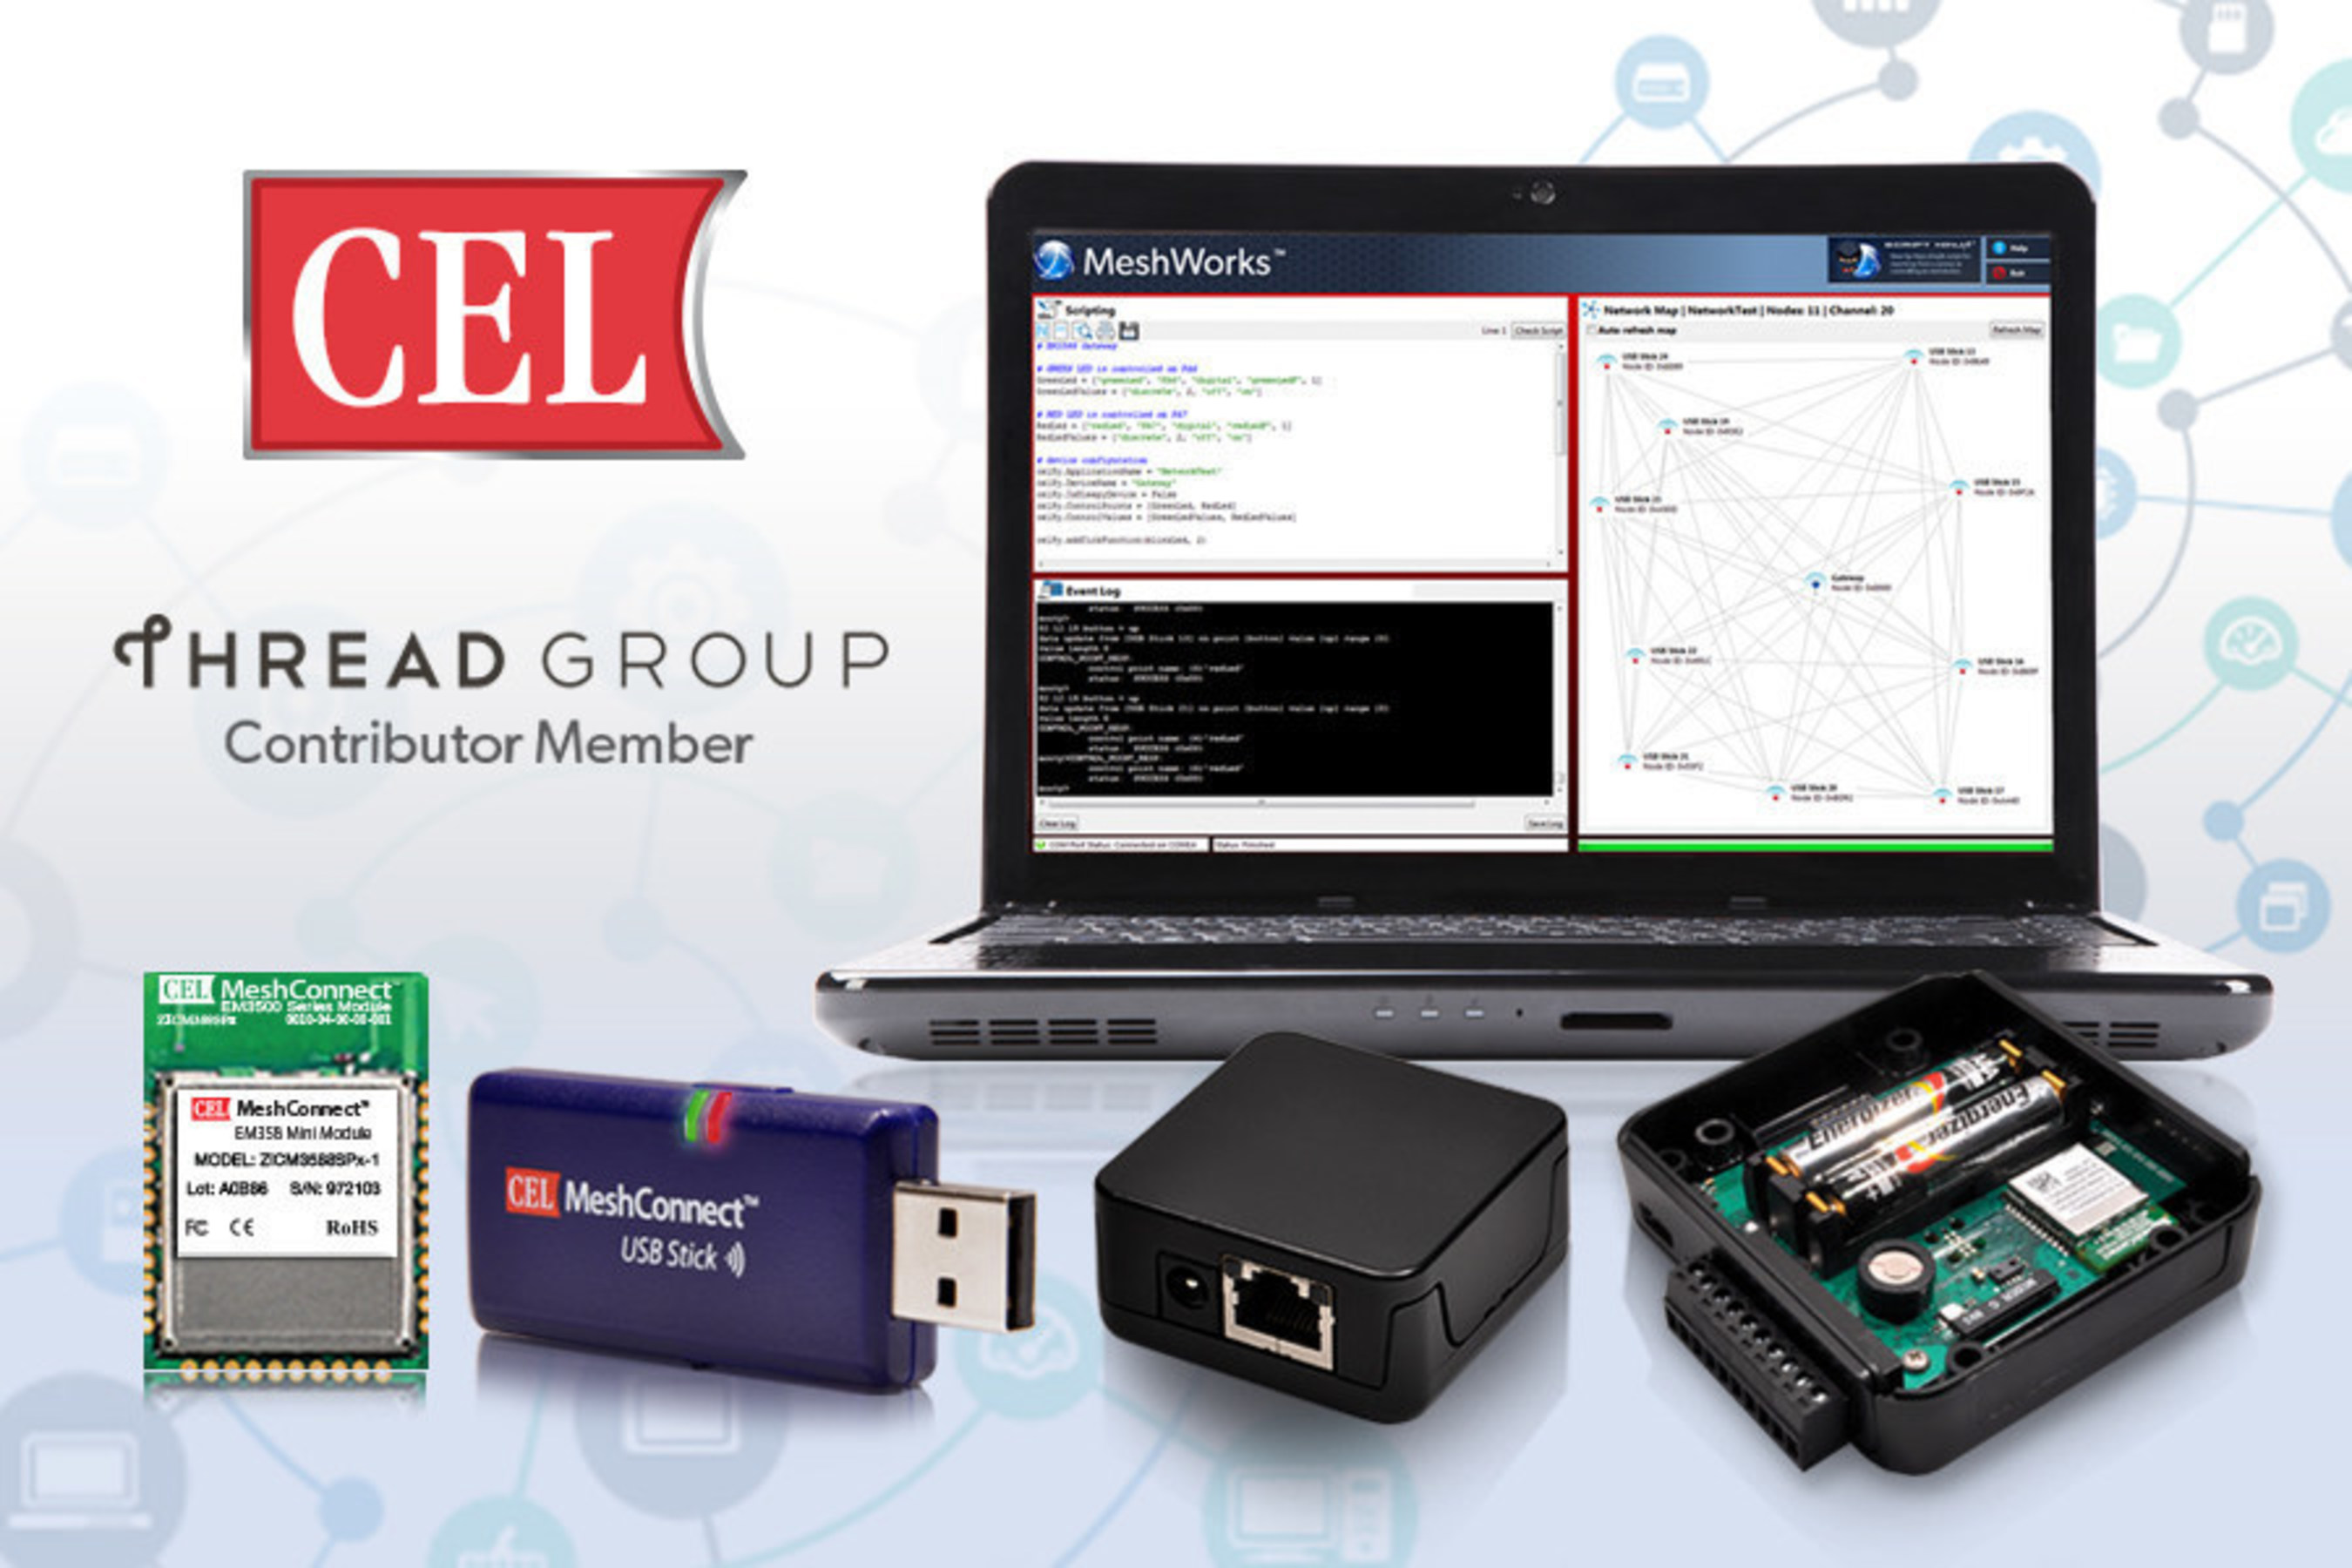 CEL Thread-Ready Products Available Today